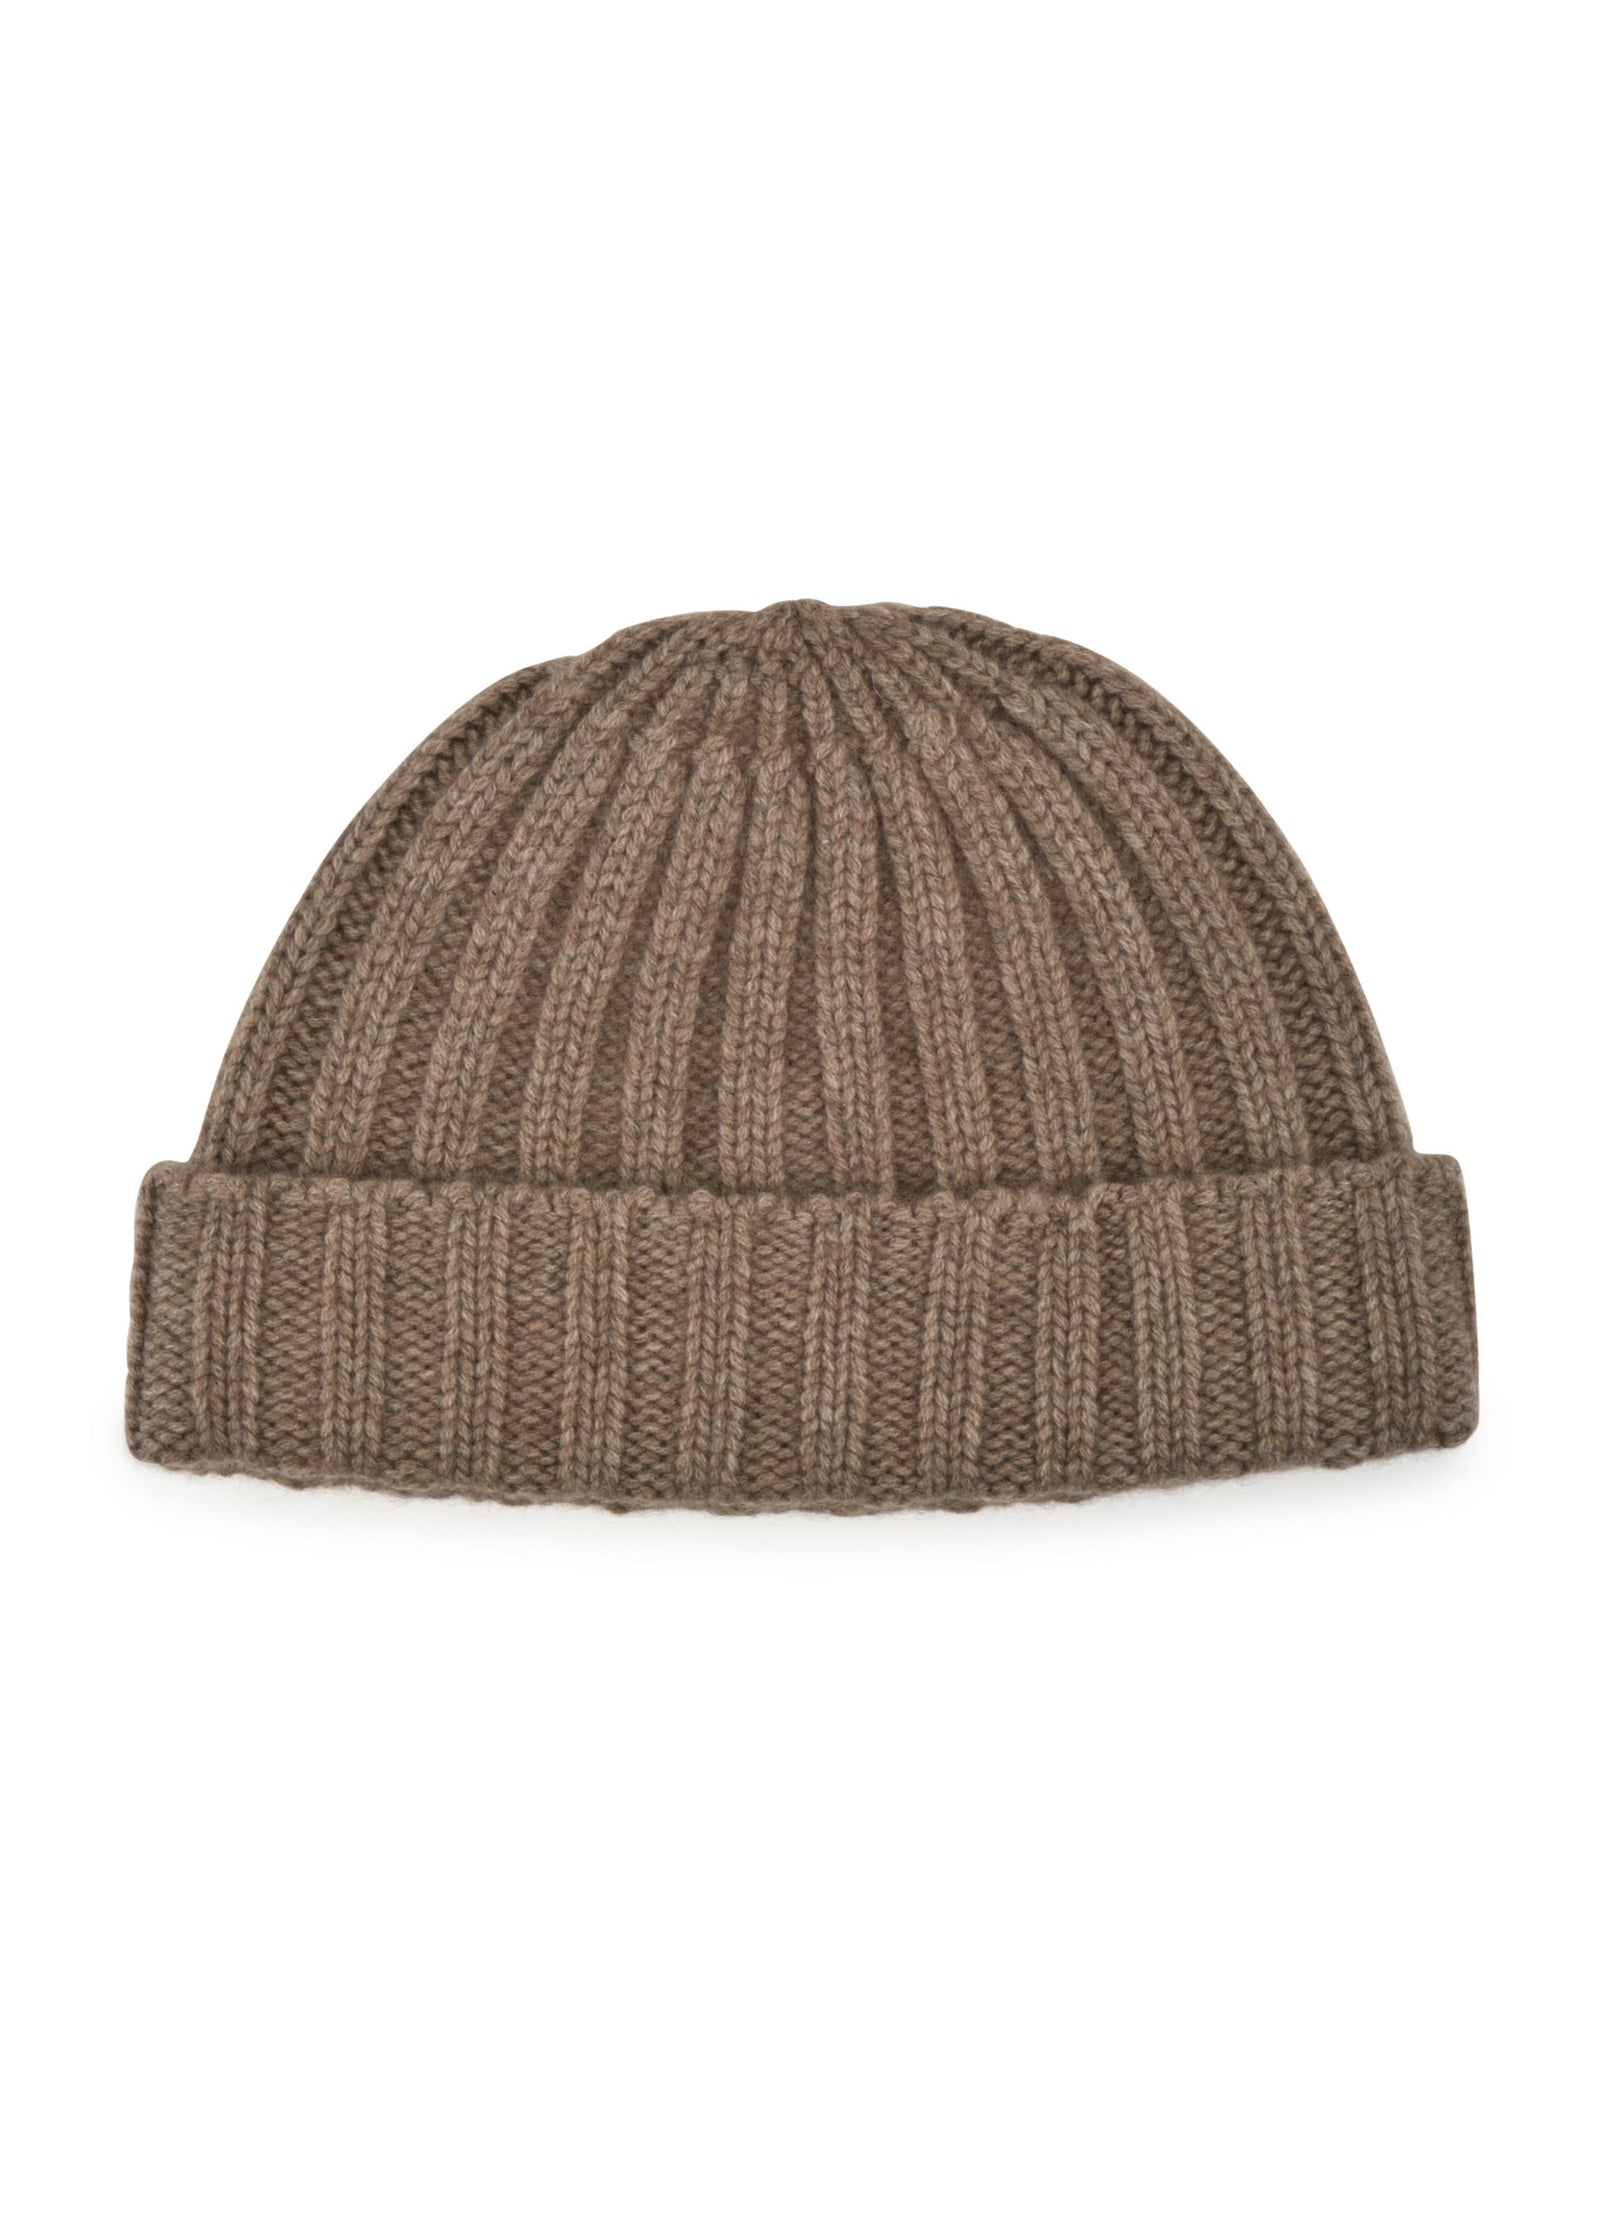 unisex natural cashmere hat